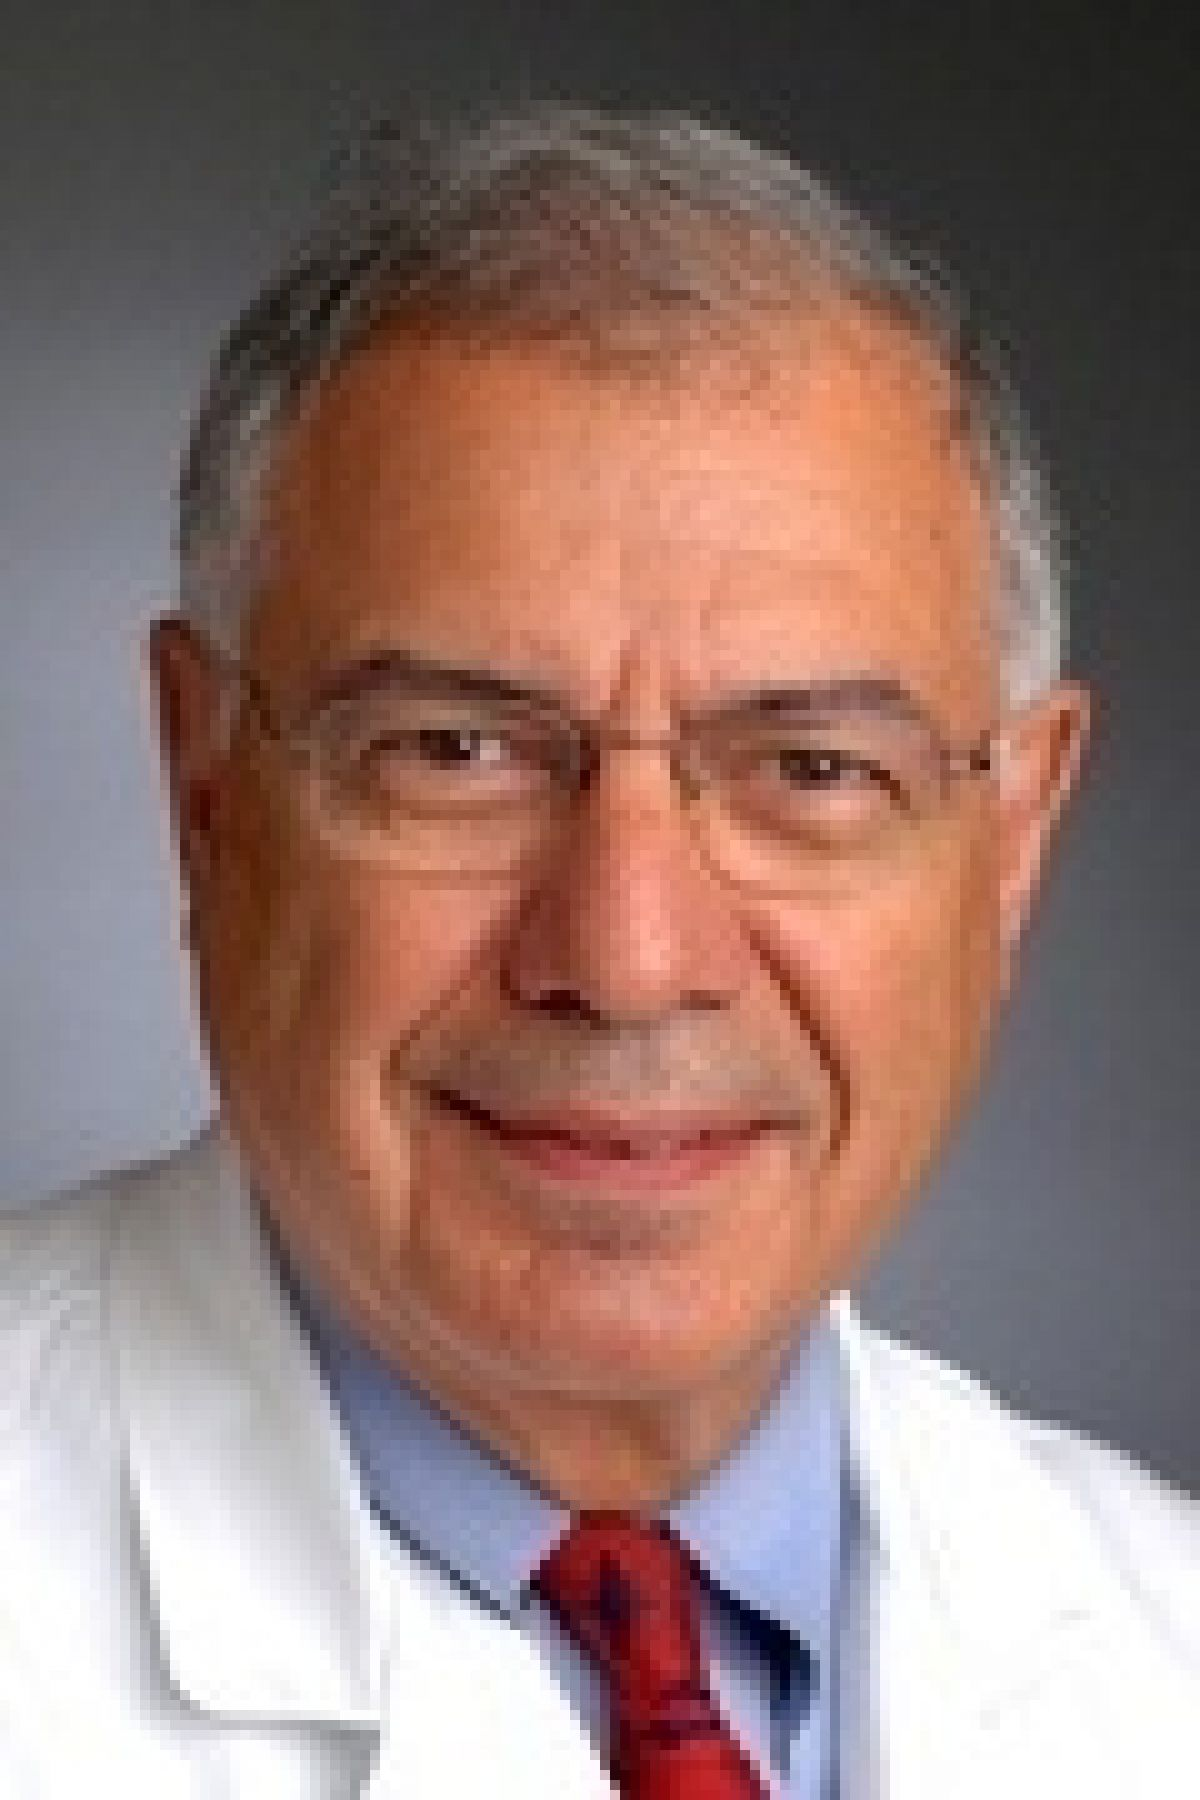 Private: Edward Laws, MD